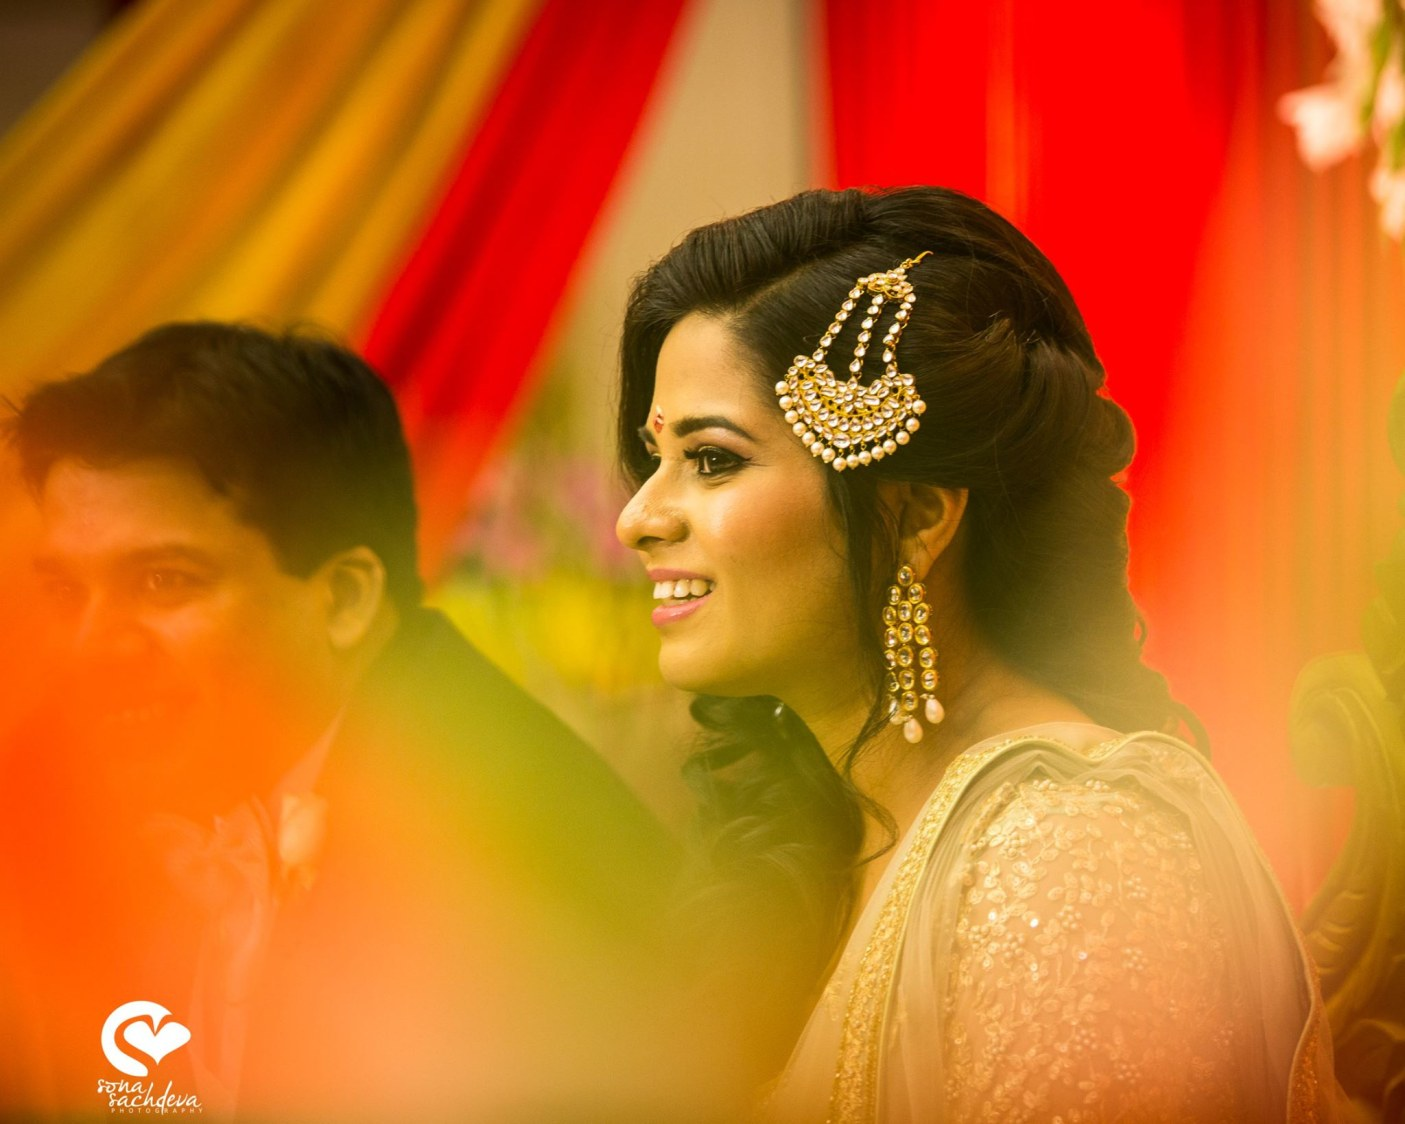 Studded with gleaming embellishments by Sona Sachdeva Photography Wedding-photography | Weddings Photos & Ideas